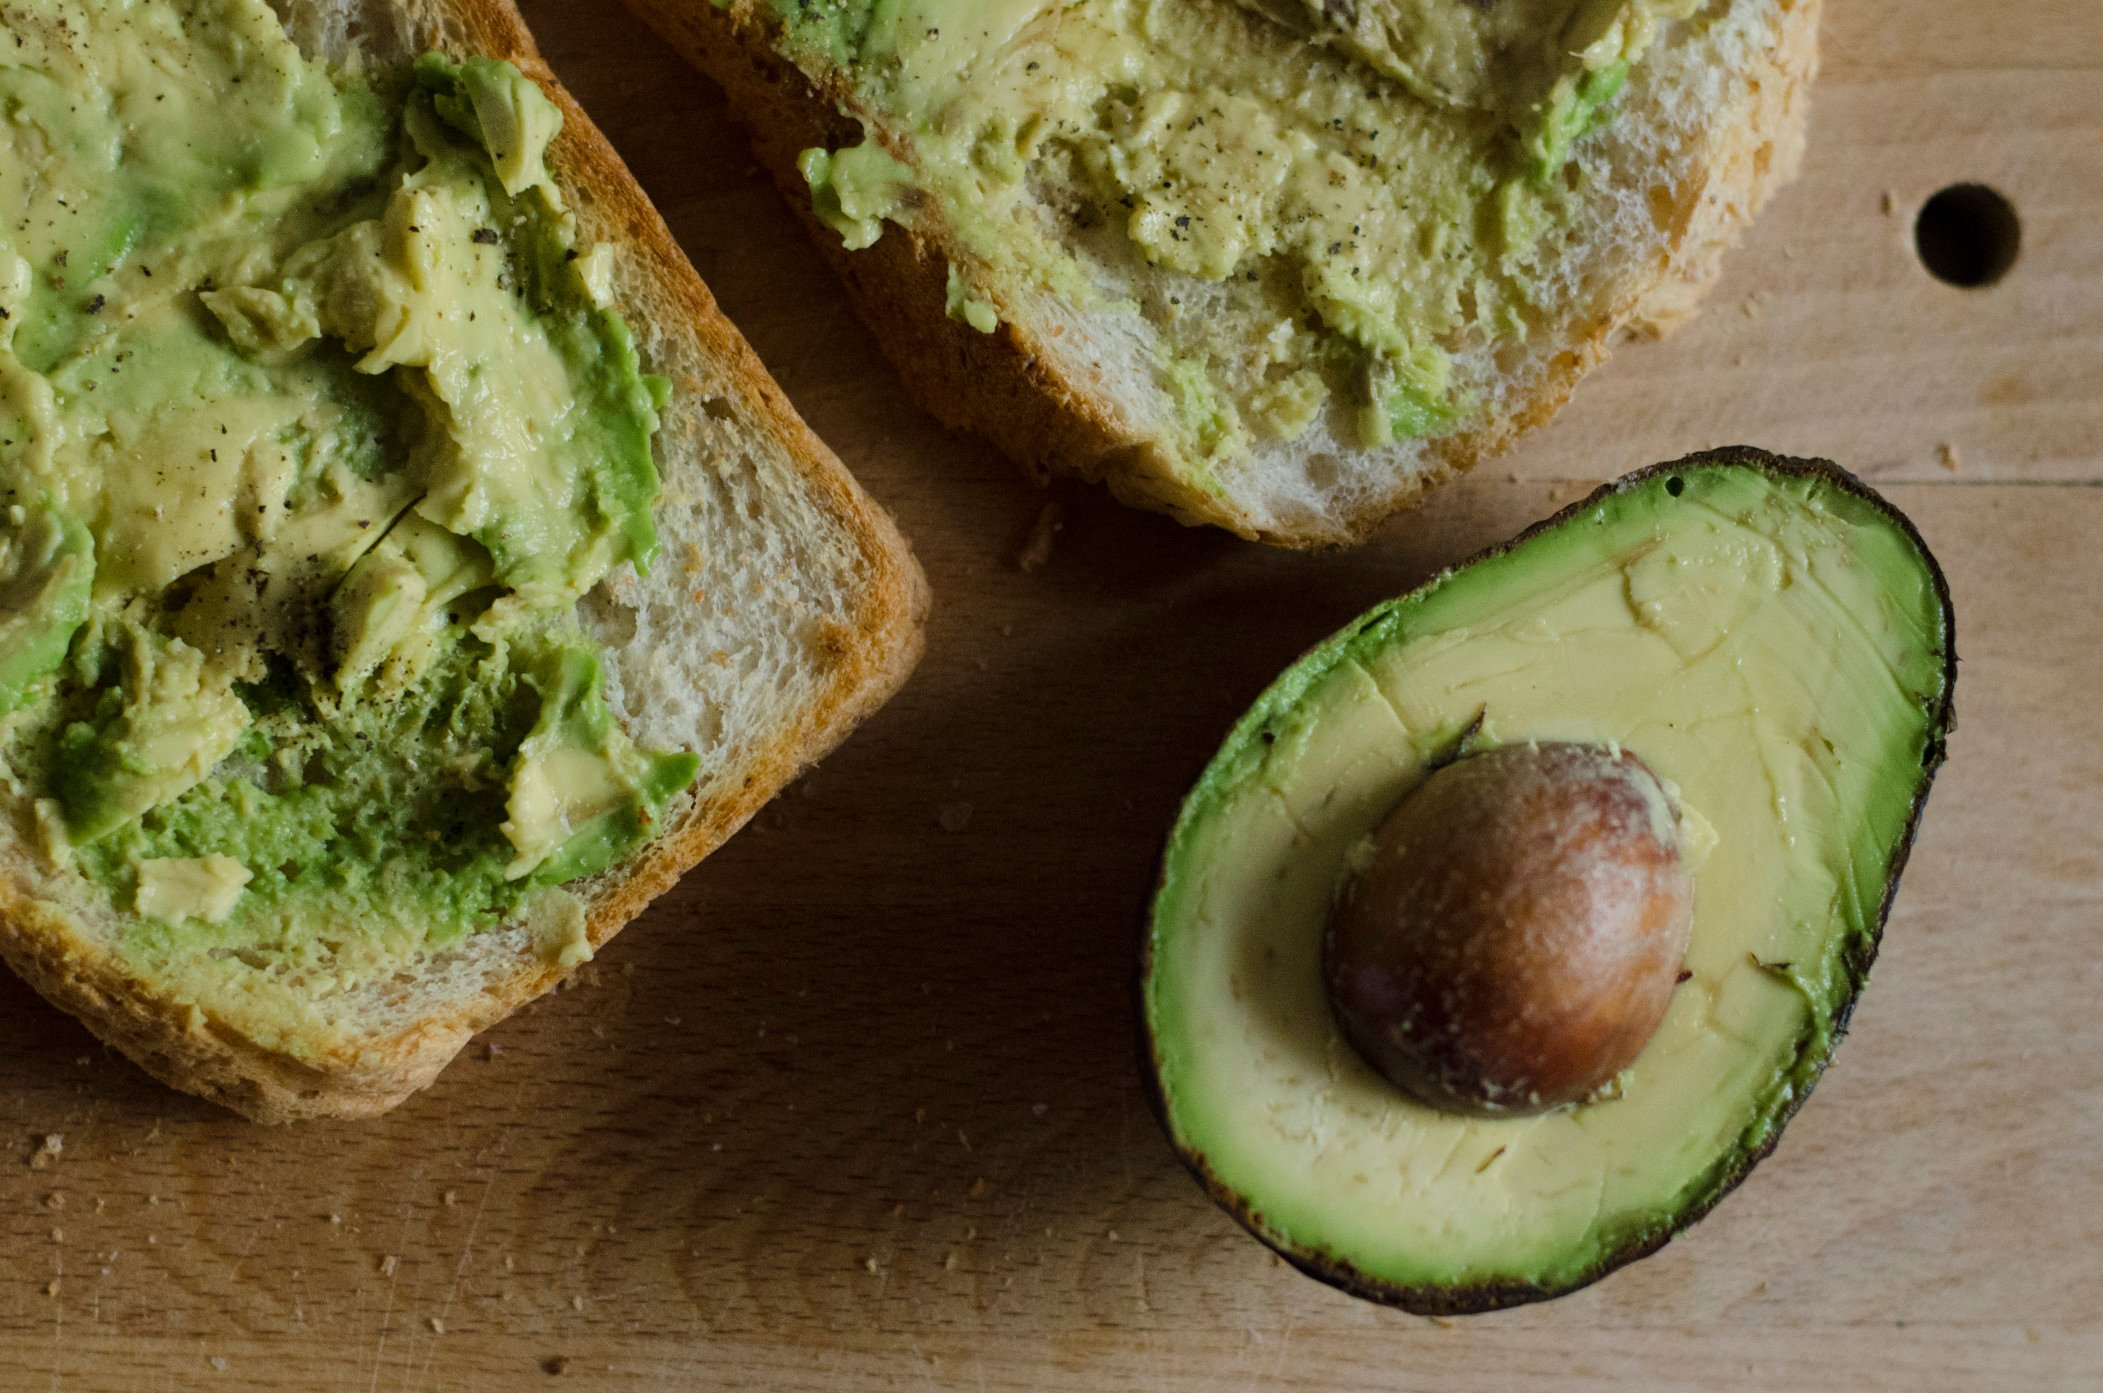 Millennials and Housing: It's Not All About Avocado Toast | LendingHome Blog